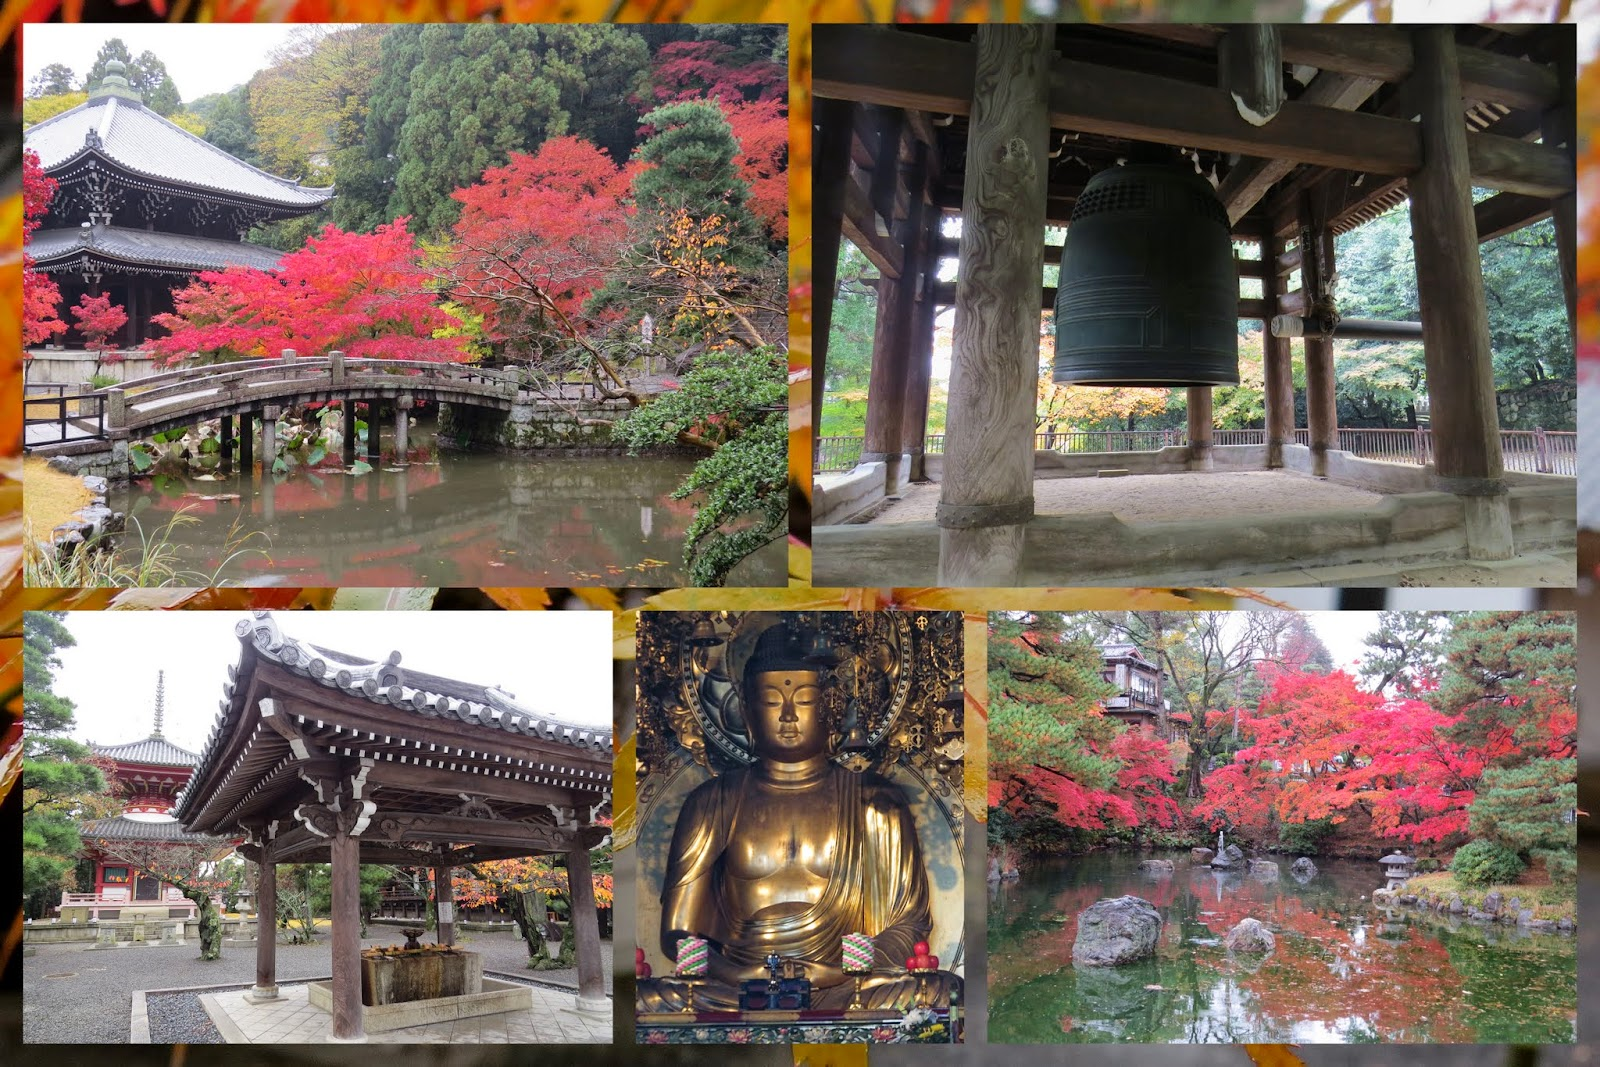 Chionin-ji Temple with Giant Bell - Kyoto